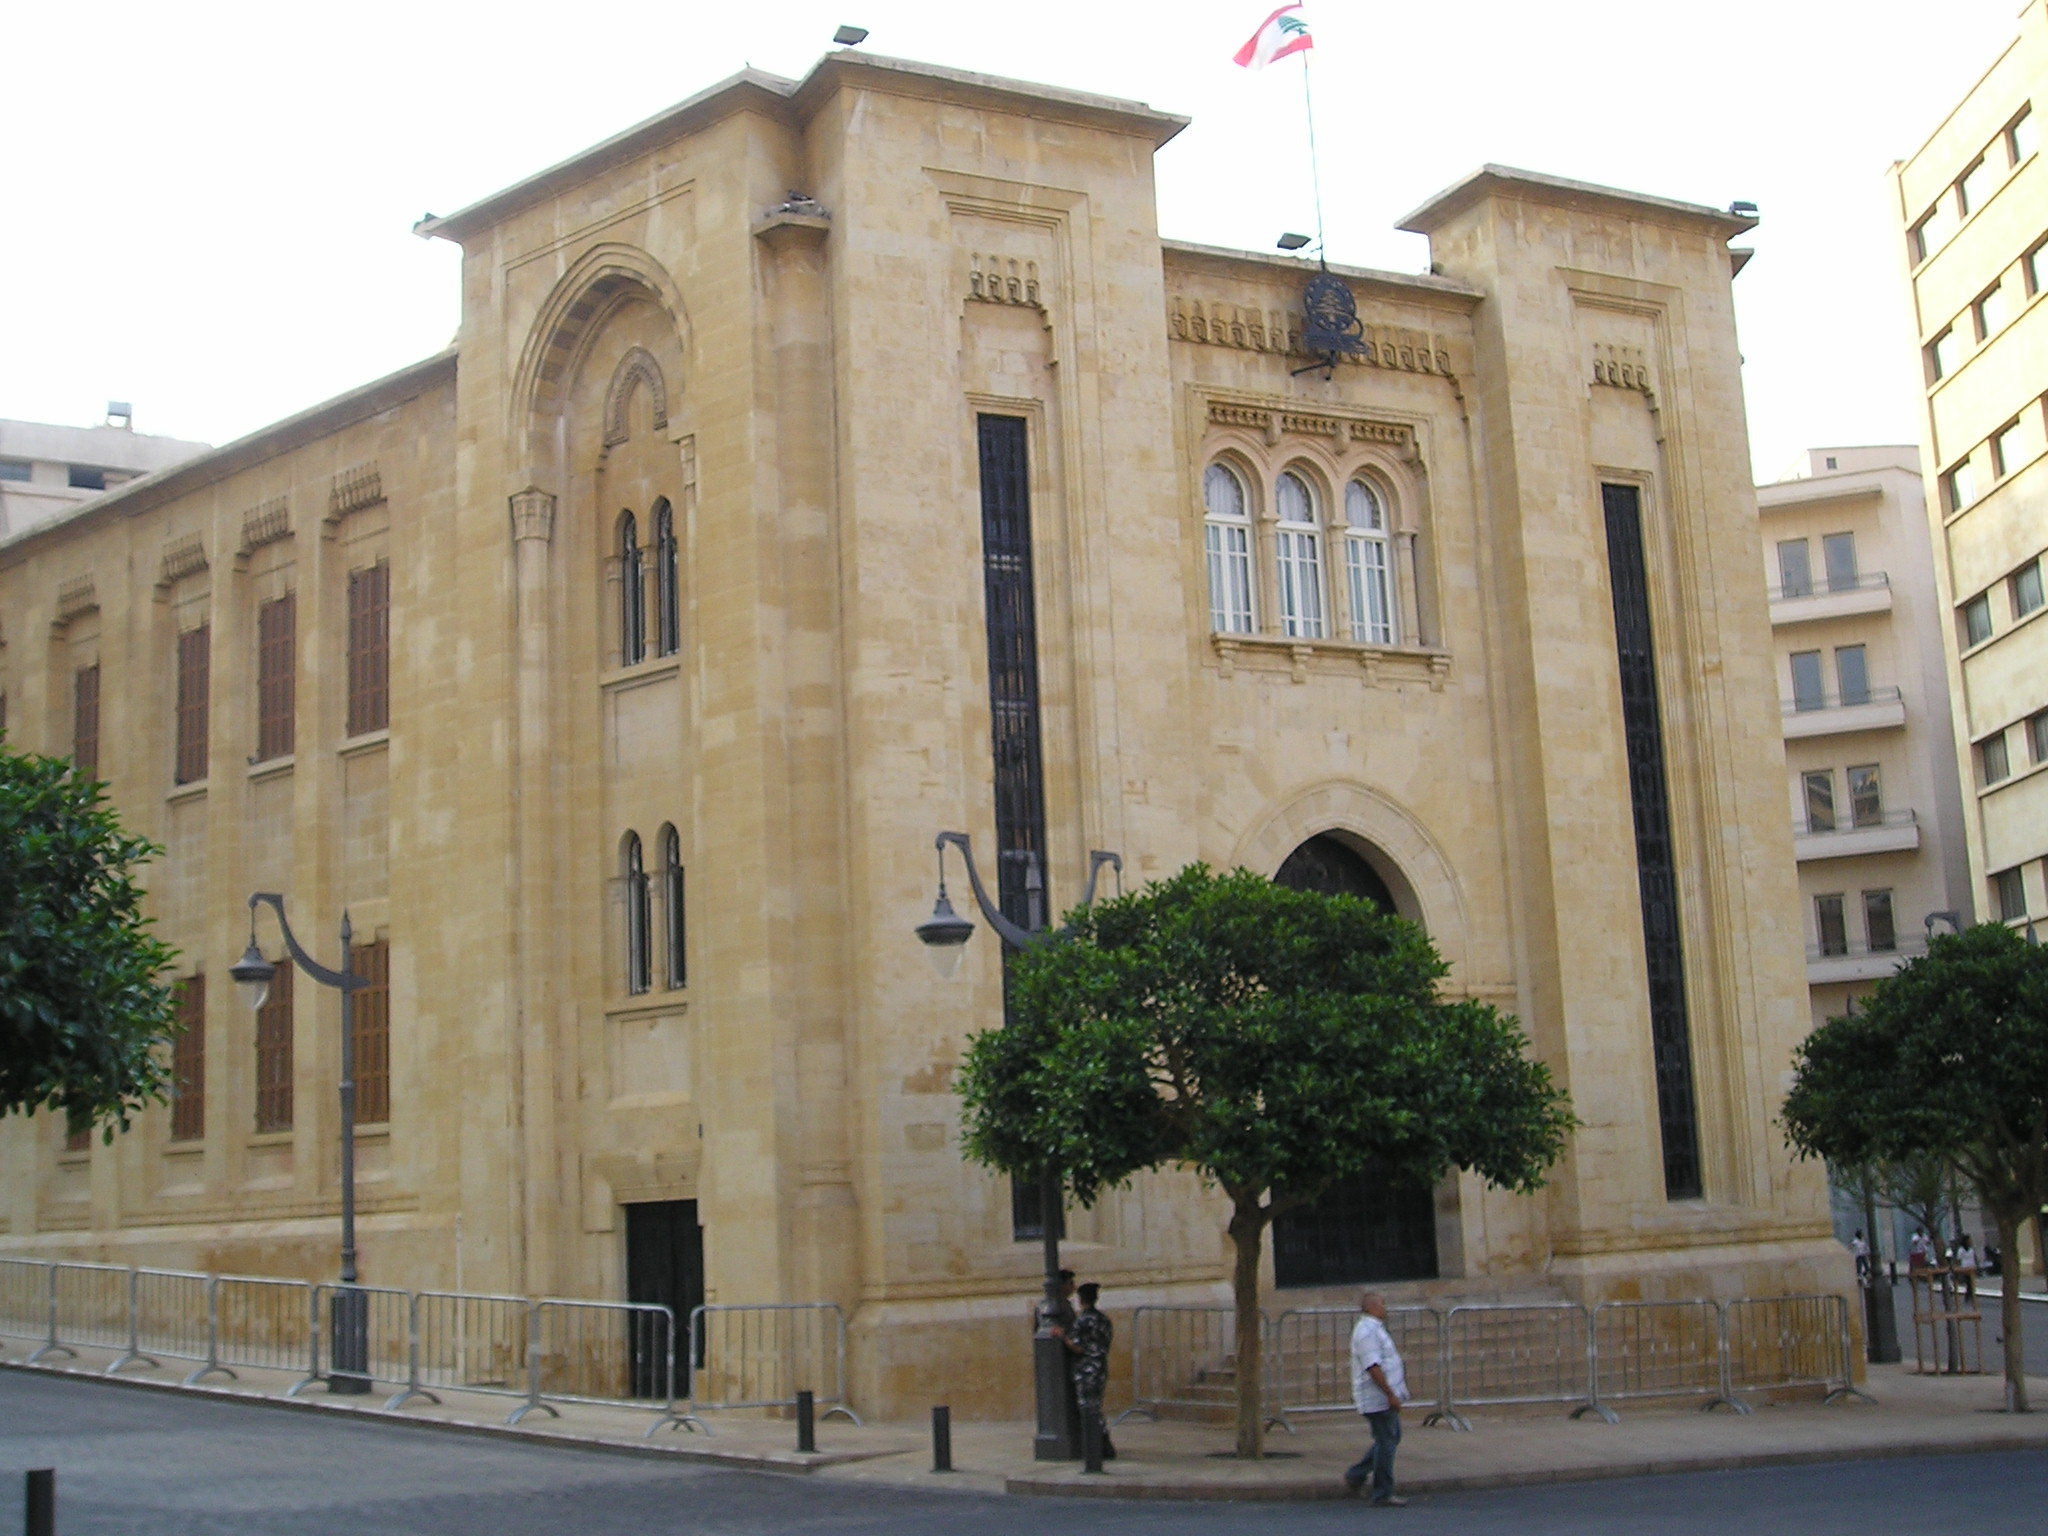 The Lebanese parliament building at the Place d'Étoile. Beirut, Lebanon